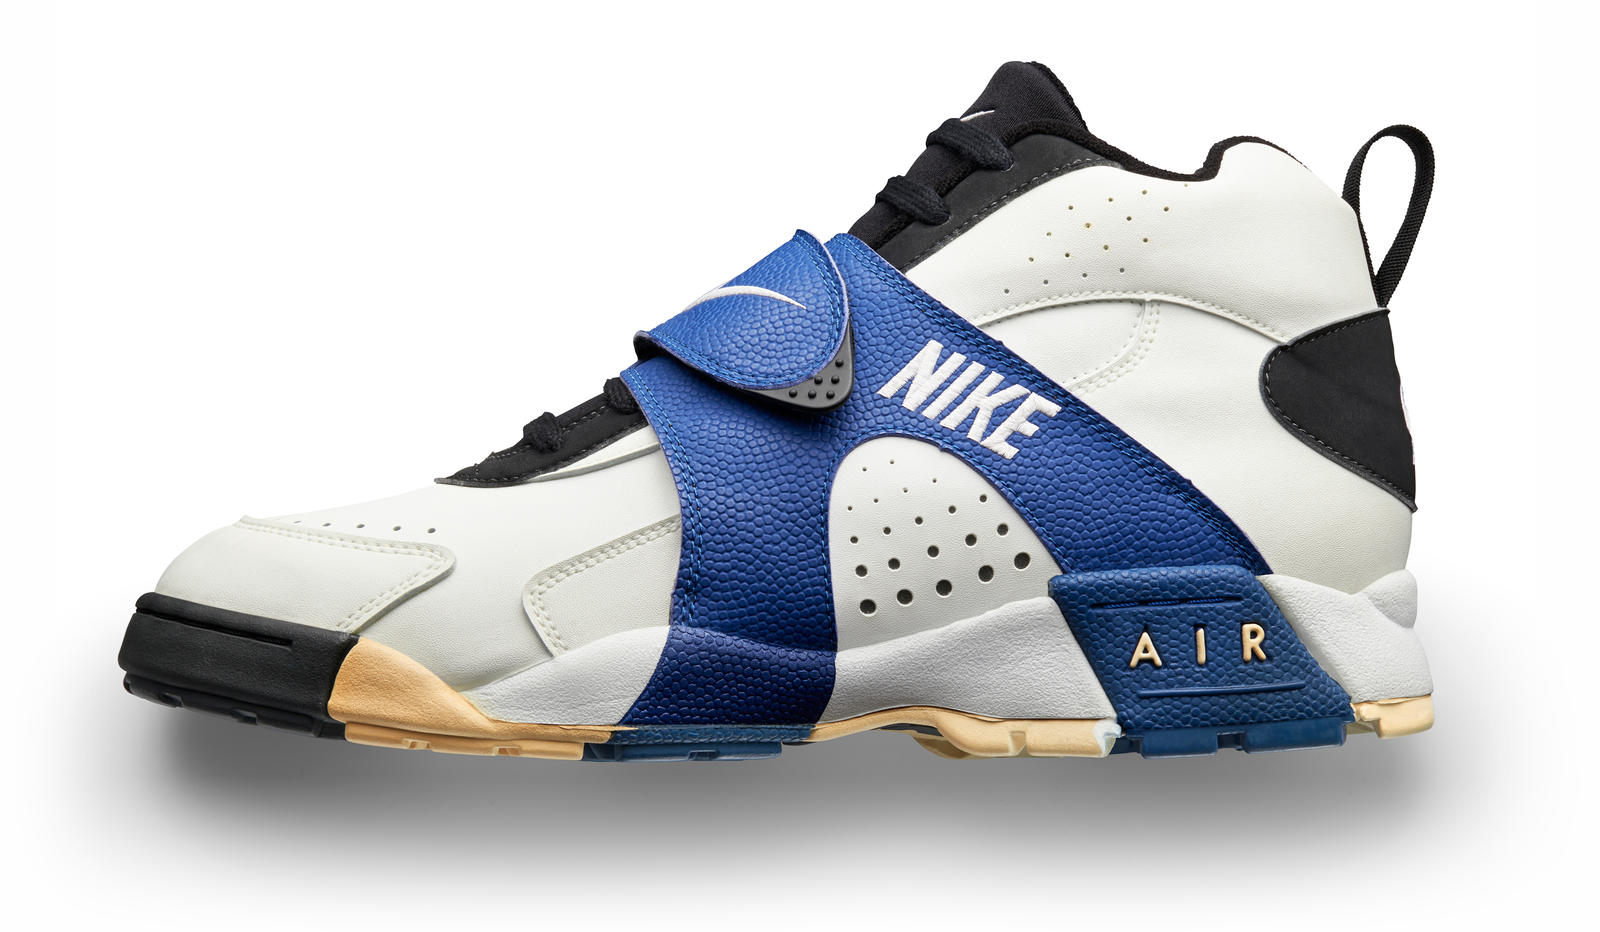 Nike Football Illustrated: A Timeline of Game-Changing ... - photo#40